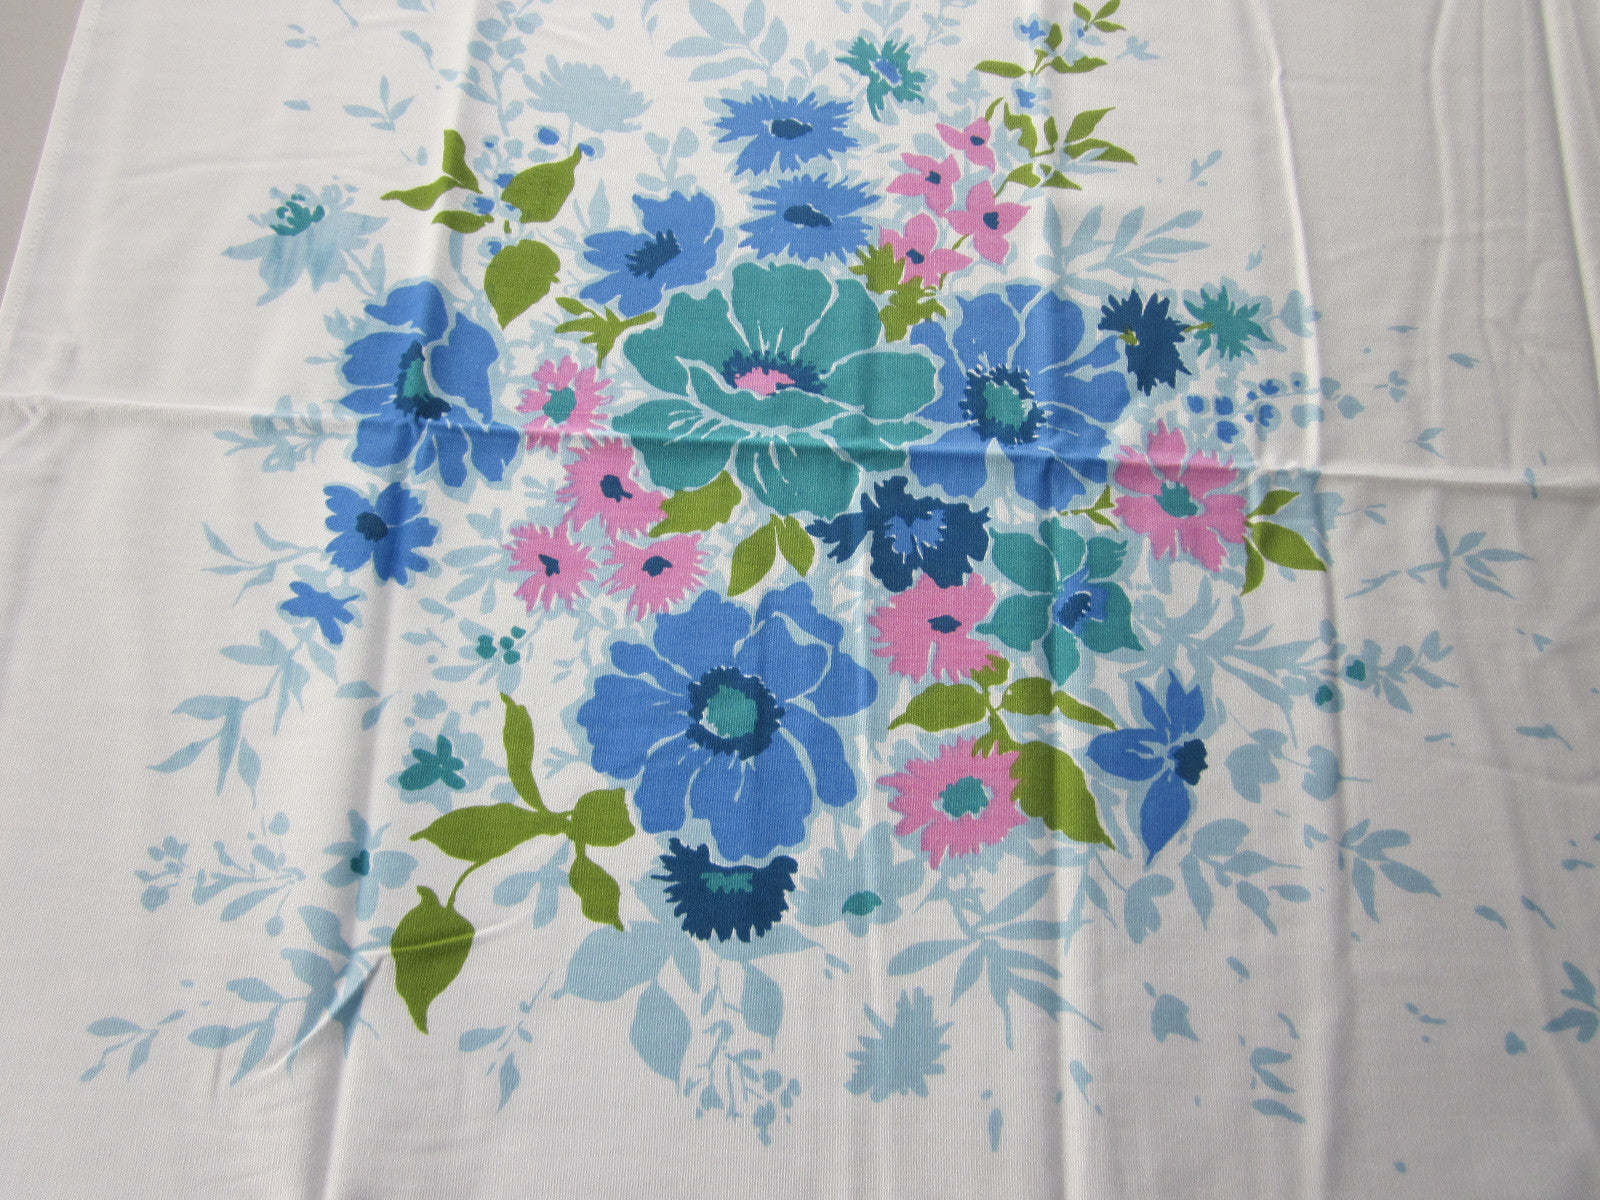 Pretty Pastel Blue Floral MWT Vintage Printed Tablecloth (52 X 50)